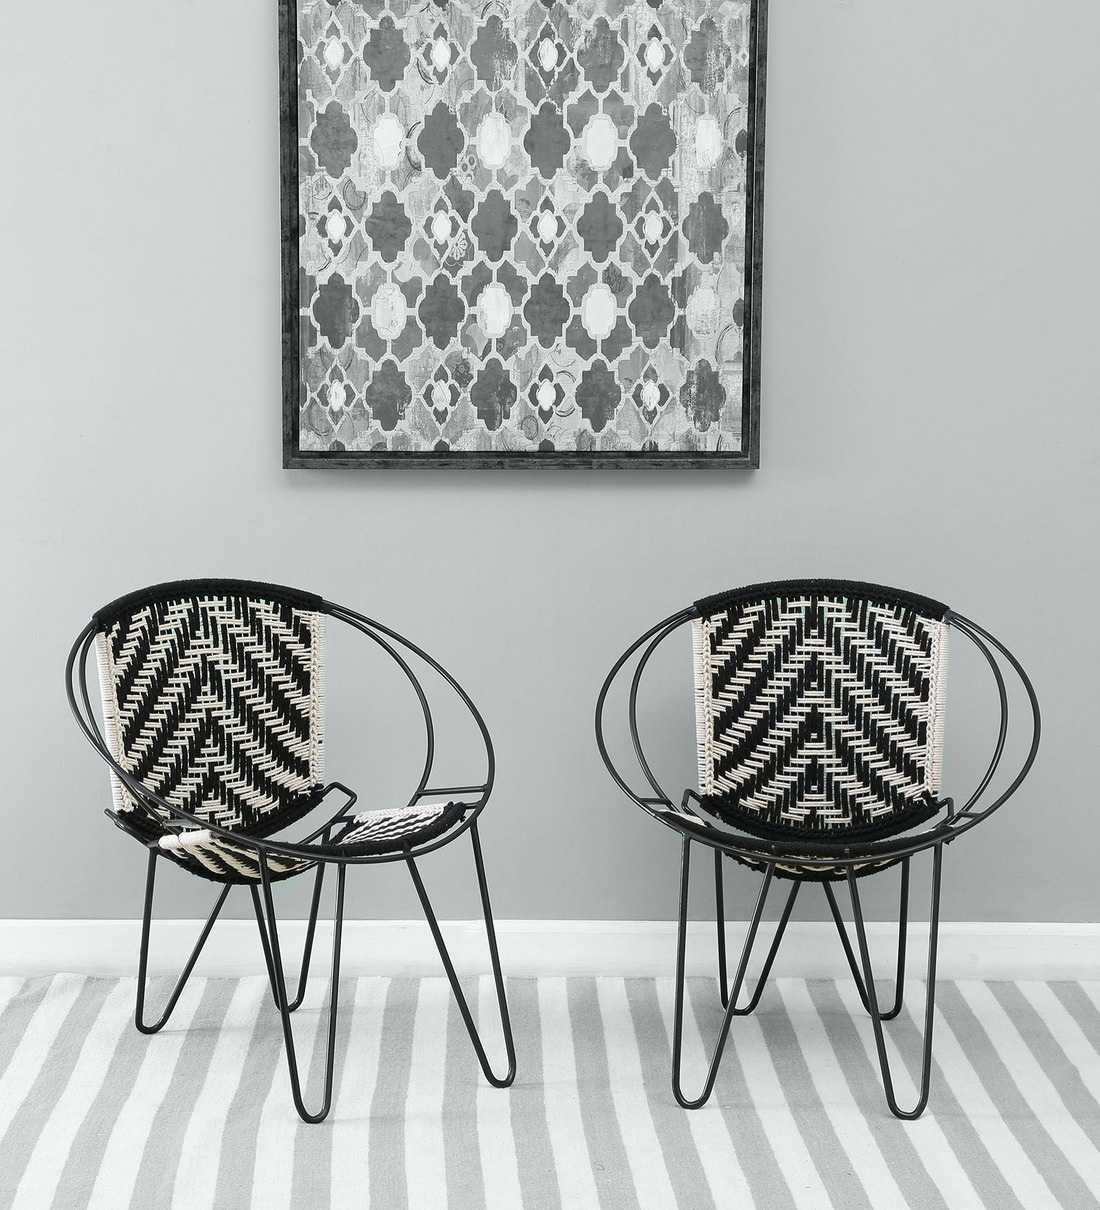 Buy Kapri Metal Patio Set Of 2 Chair Bohemiana By Pepperfry Online Lawn Chairs Chairs Furniture Pepperfry Product